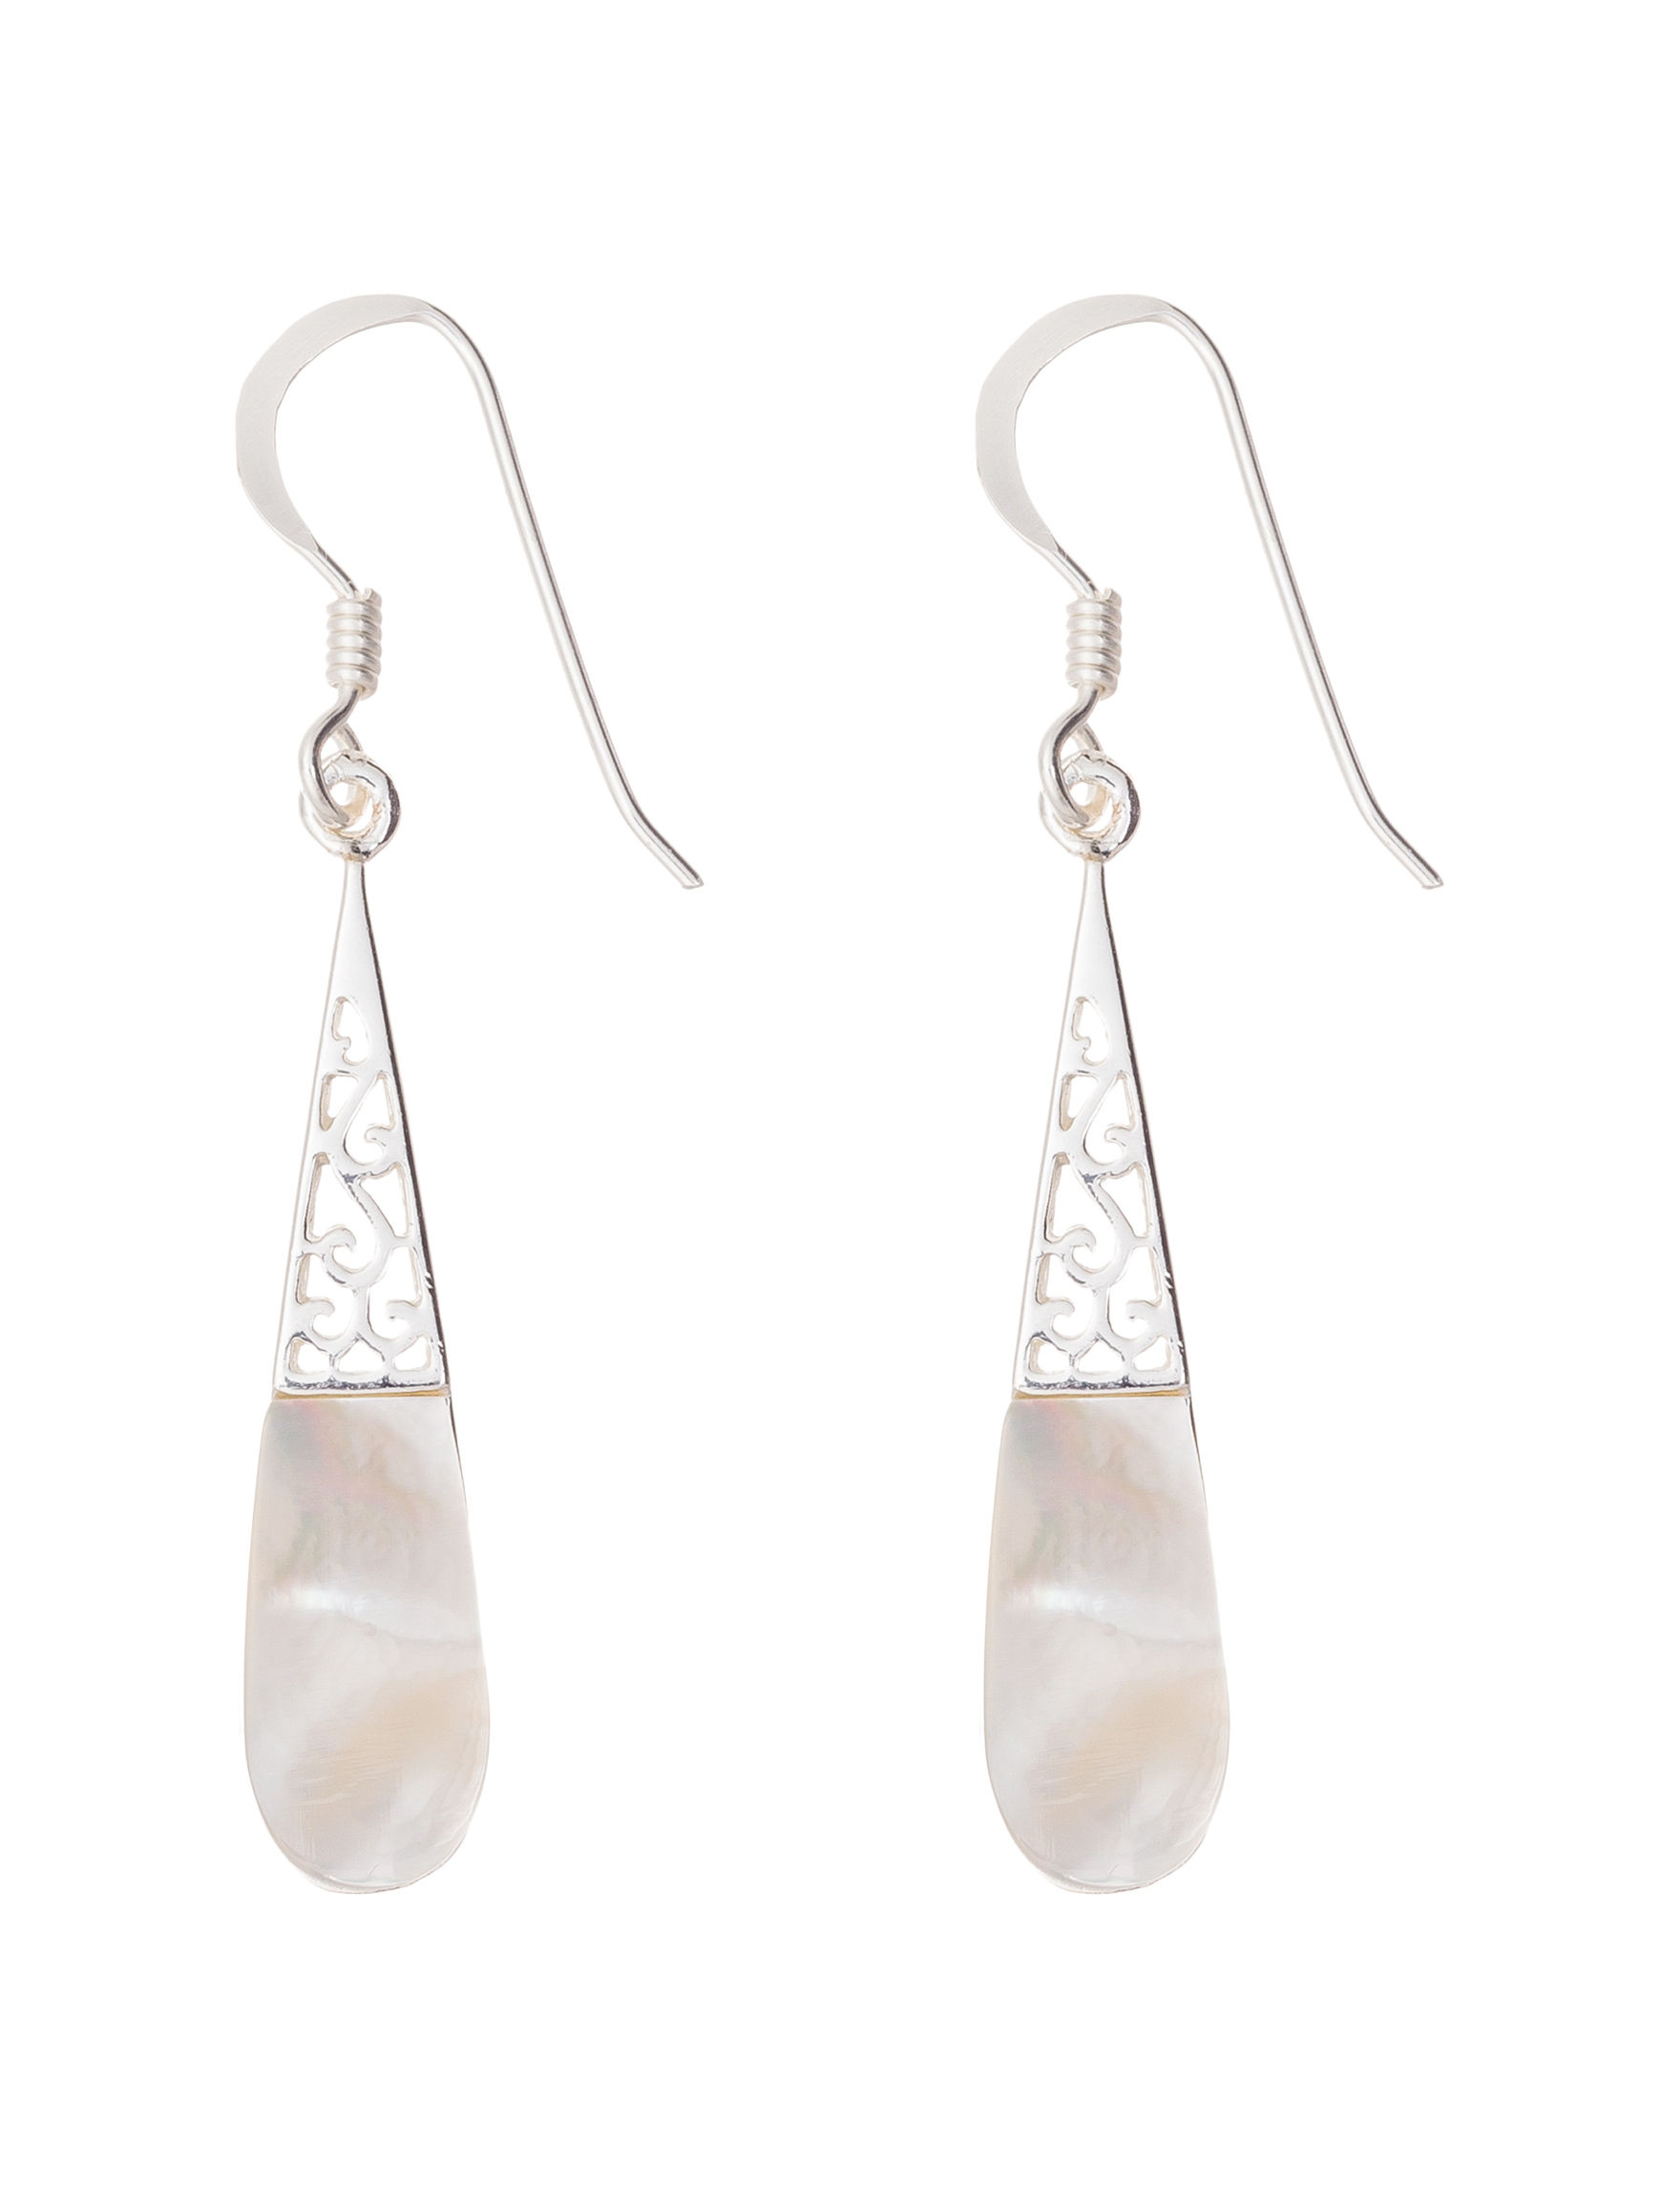 Marsala Silver / White Drops Earrings Fine Jewelry